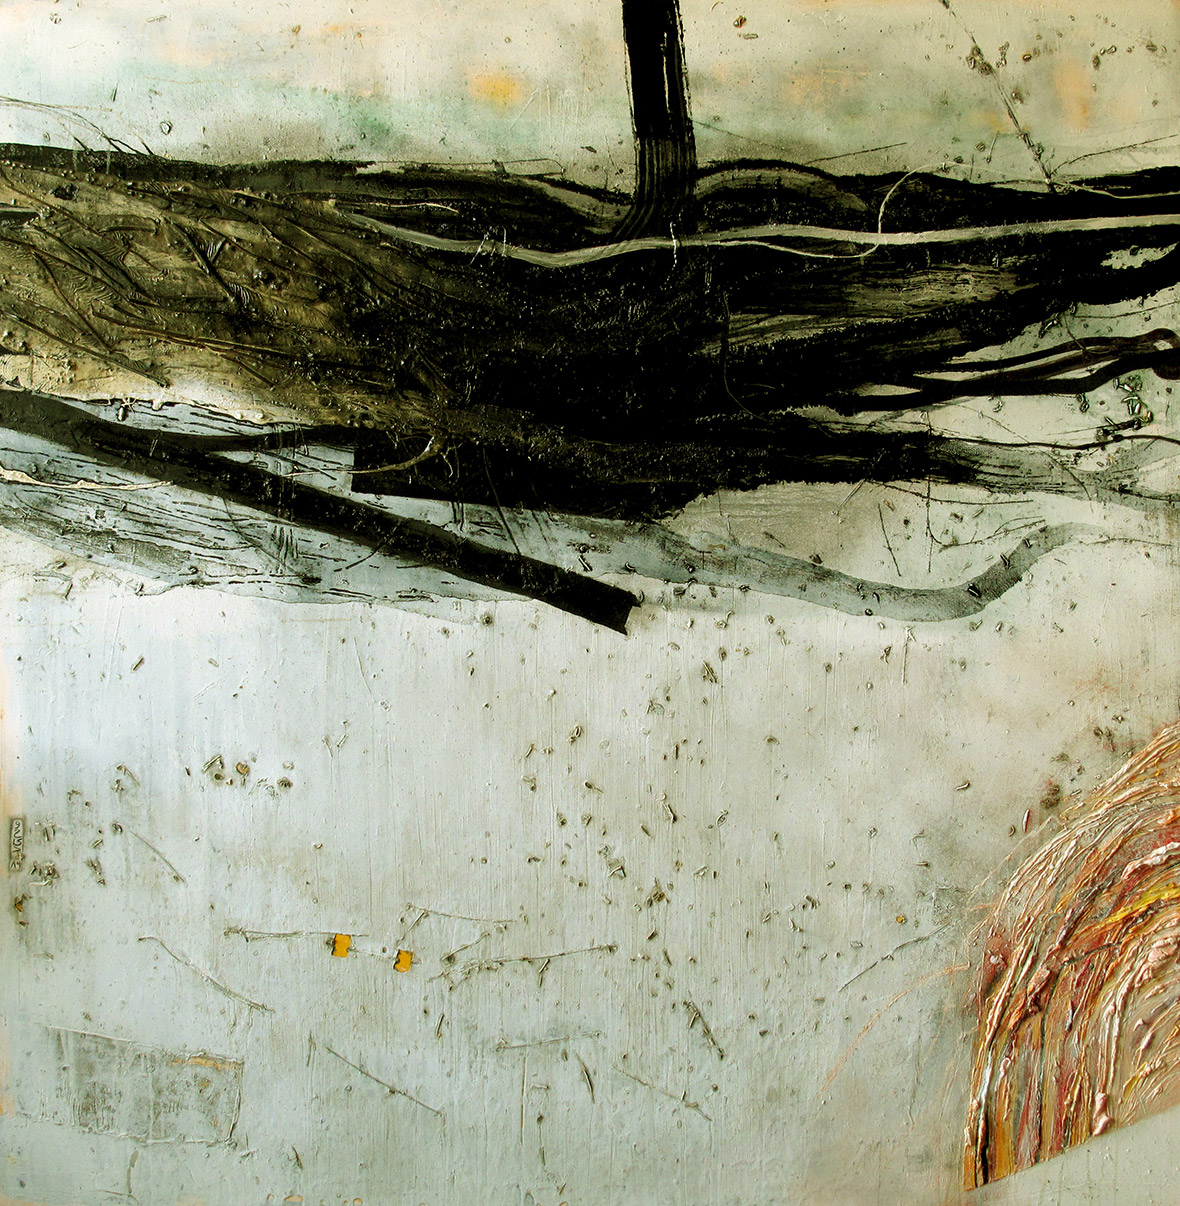 2010 - Mixed Media - 160x160cm